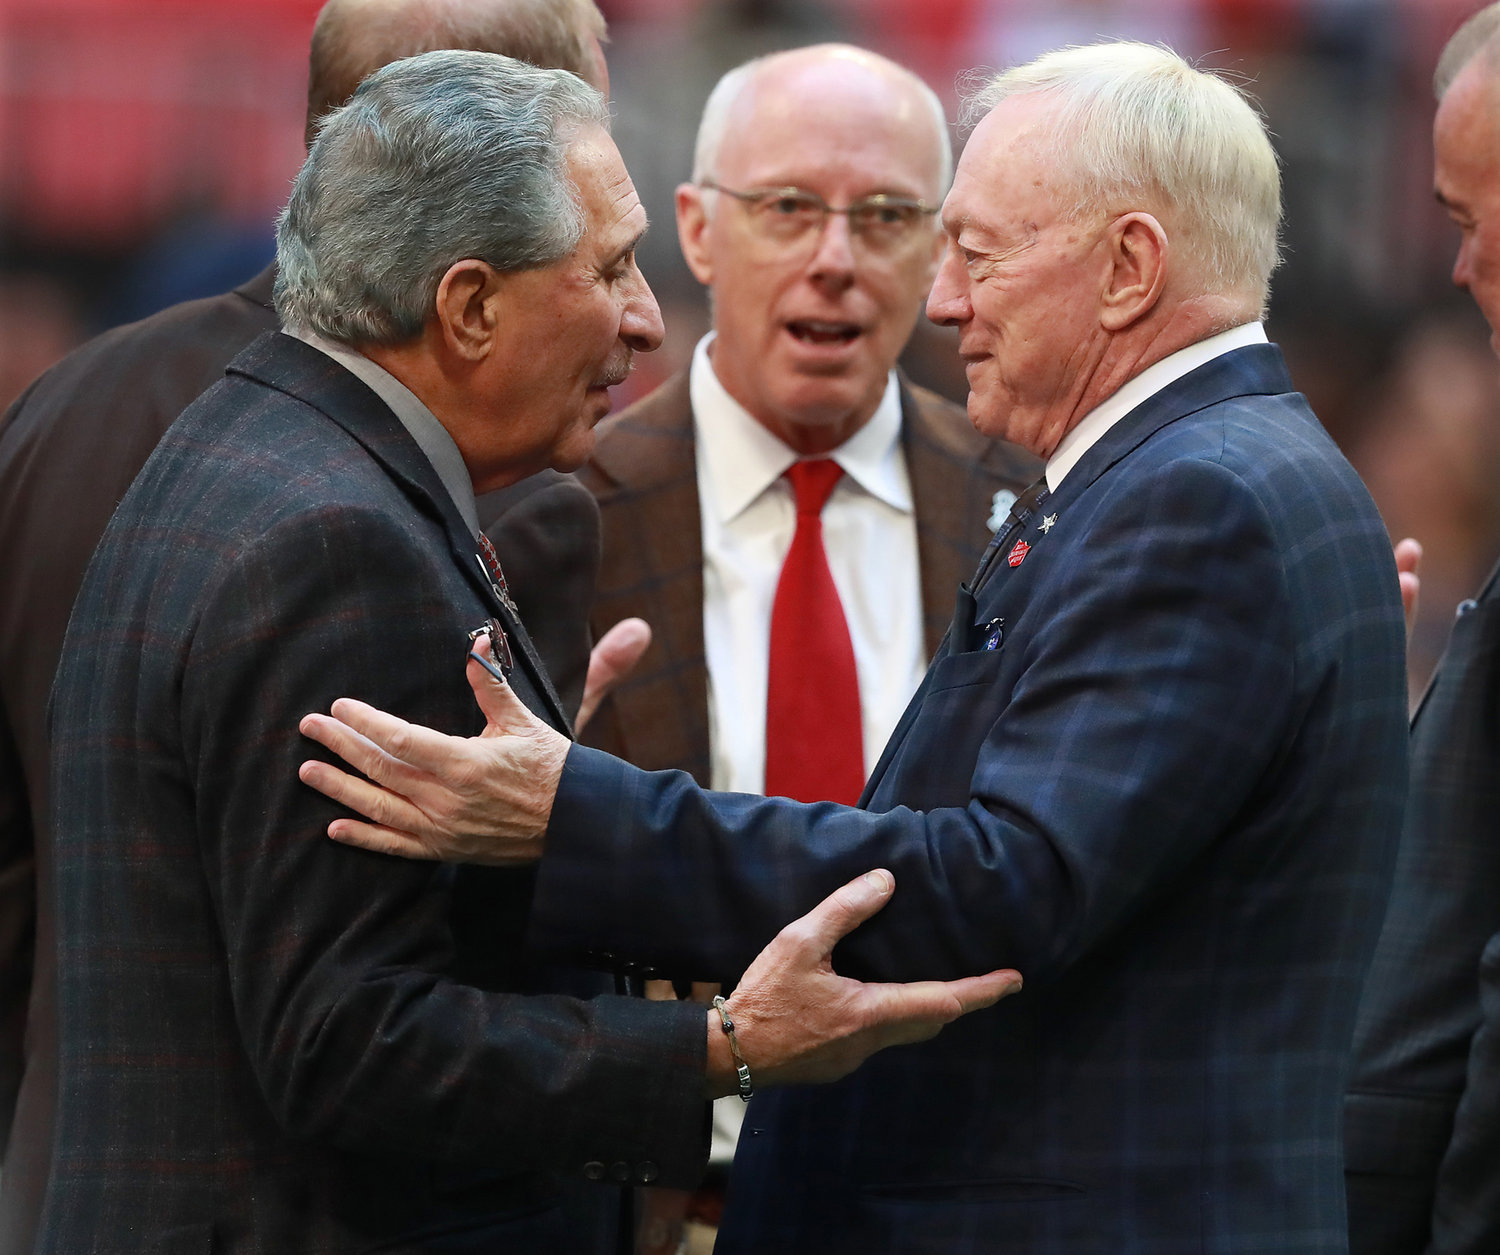 Atlanta Falcons owner Arthur Blank, left, and Dallas Cowboys owner Jerry Jones greet each other before a game on Nov. 18, 2018, at Mercedes Benz Stadium in Atlanta.